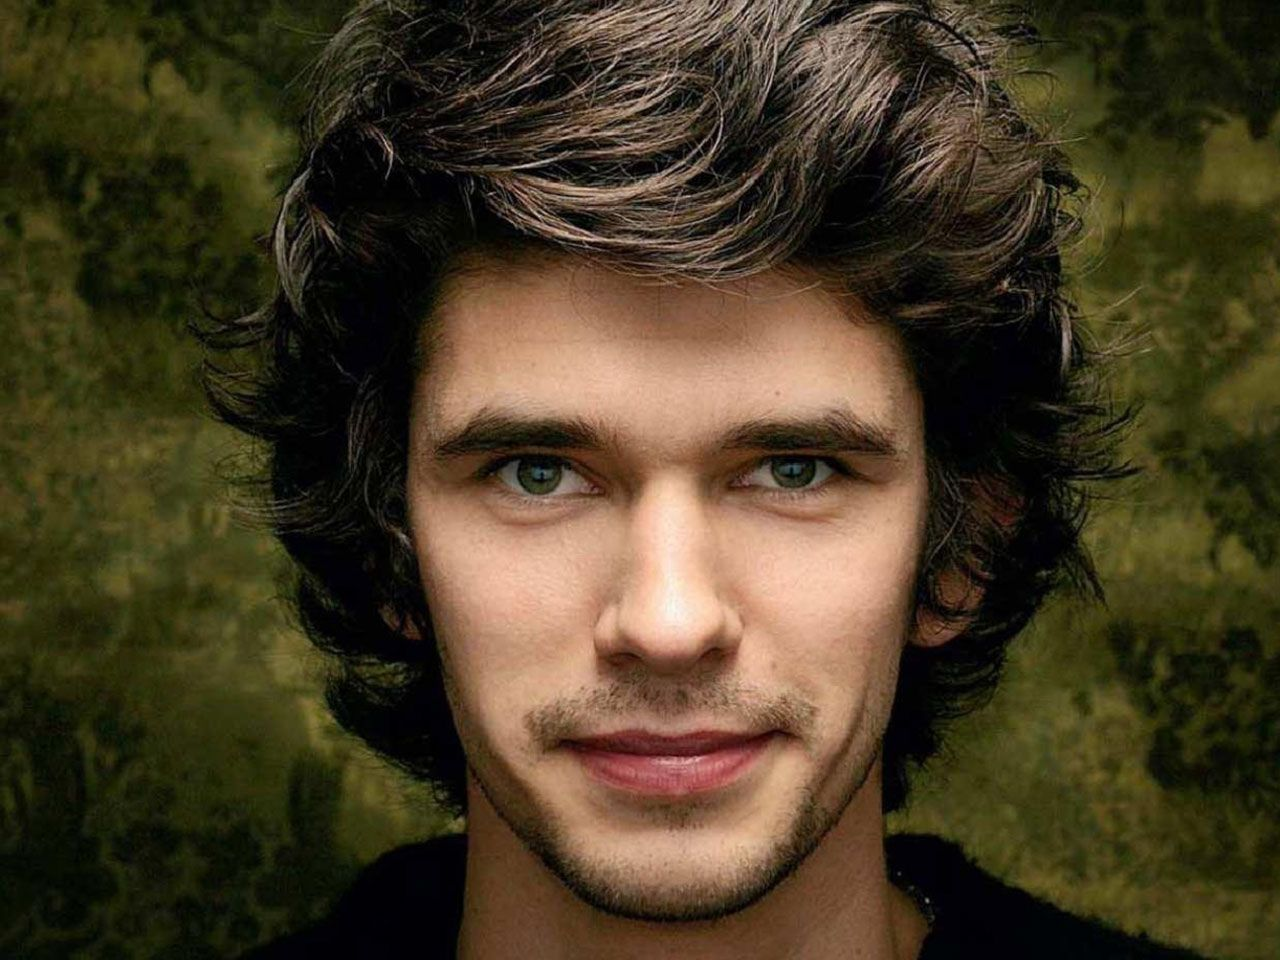 Ben Whishaw earned a  million dollar salary - leaving the net worth at 2 million in 2018